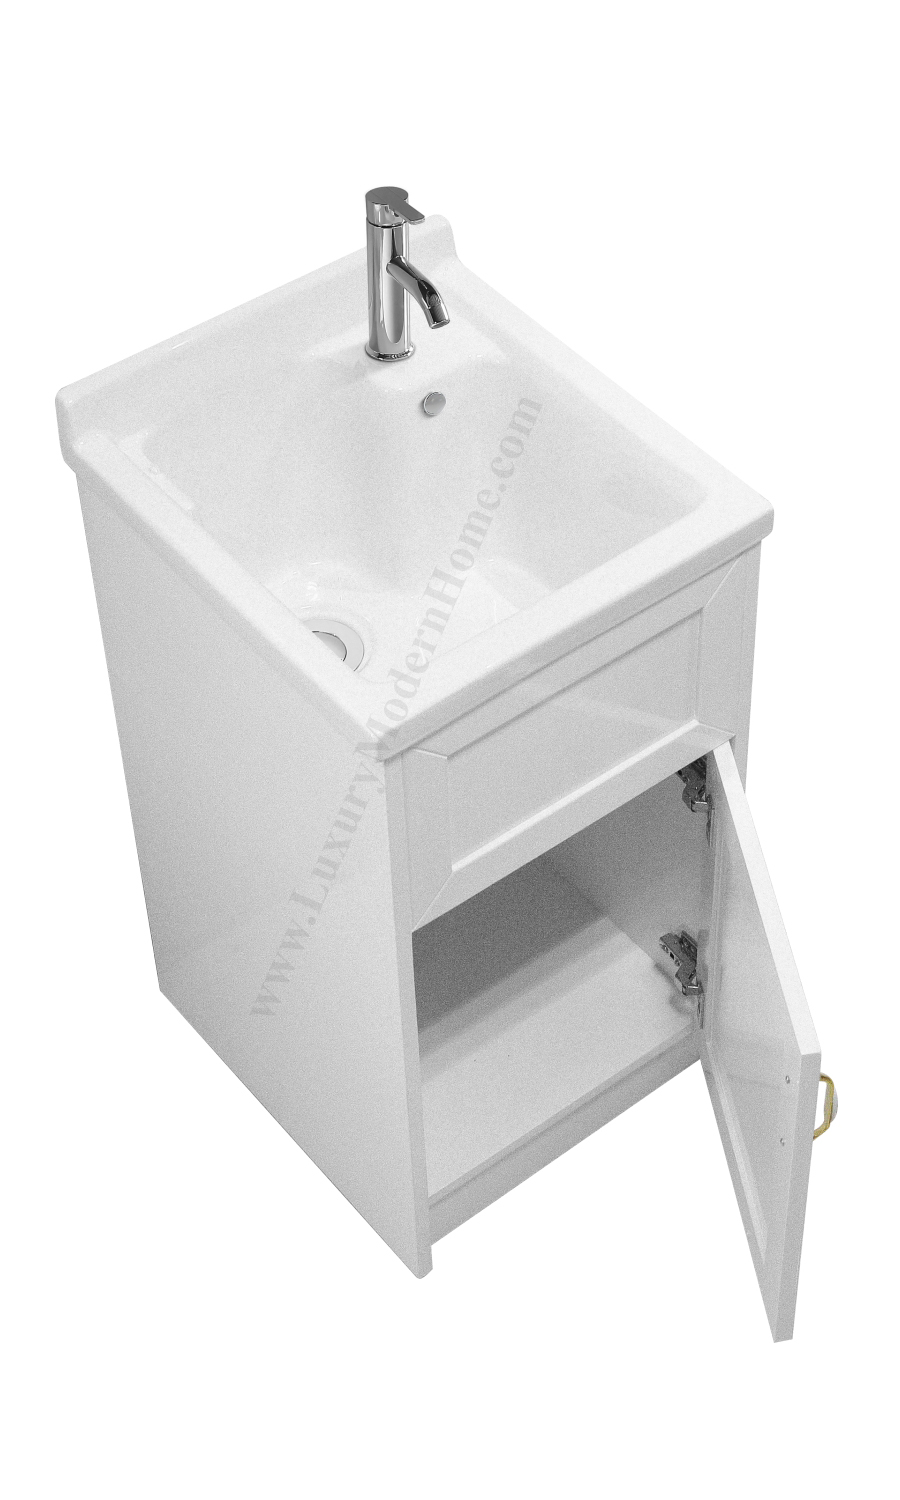 18 Inch Utility Sink With Cabinet : Narrow laundry sinks utility tubs with home depot laundry sink cabinet